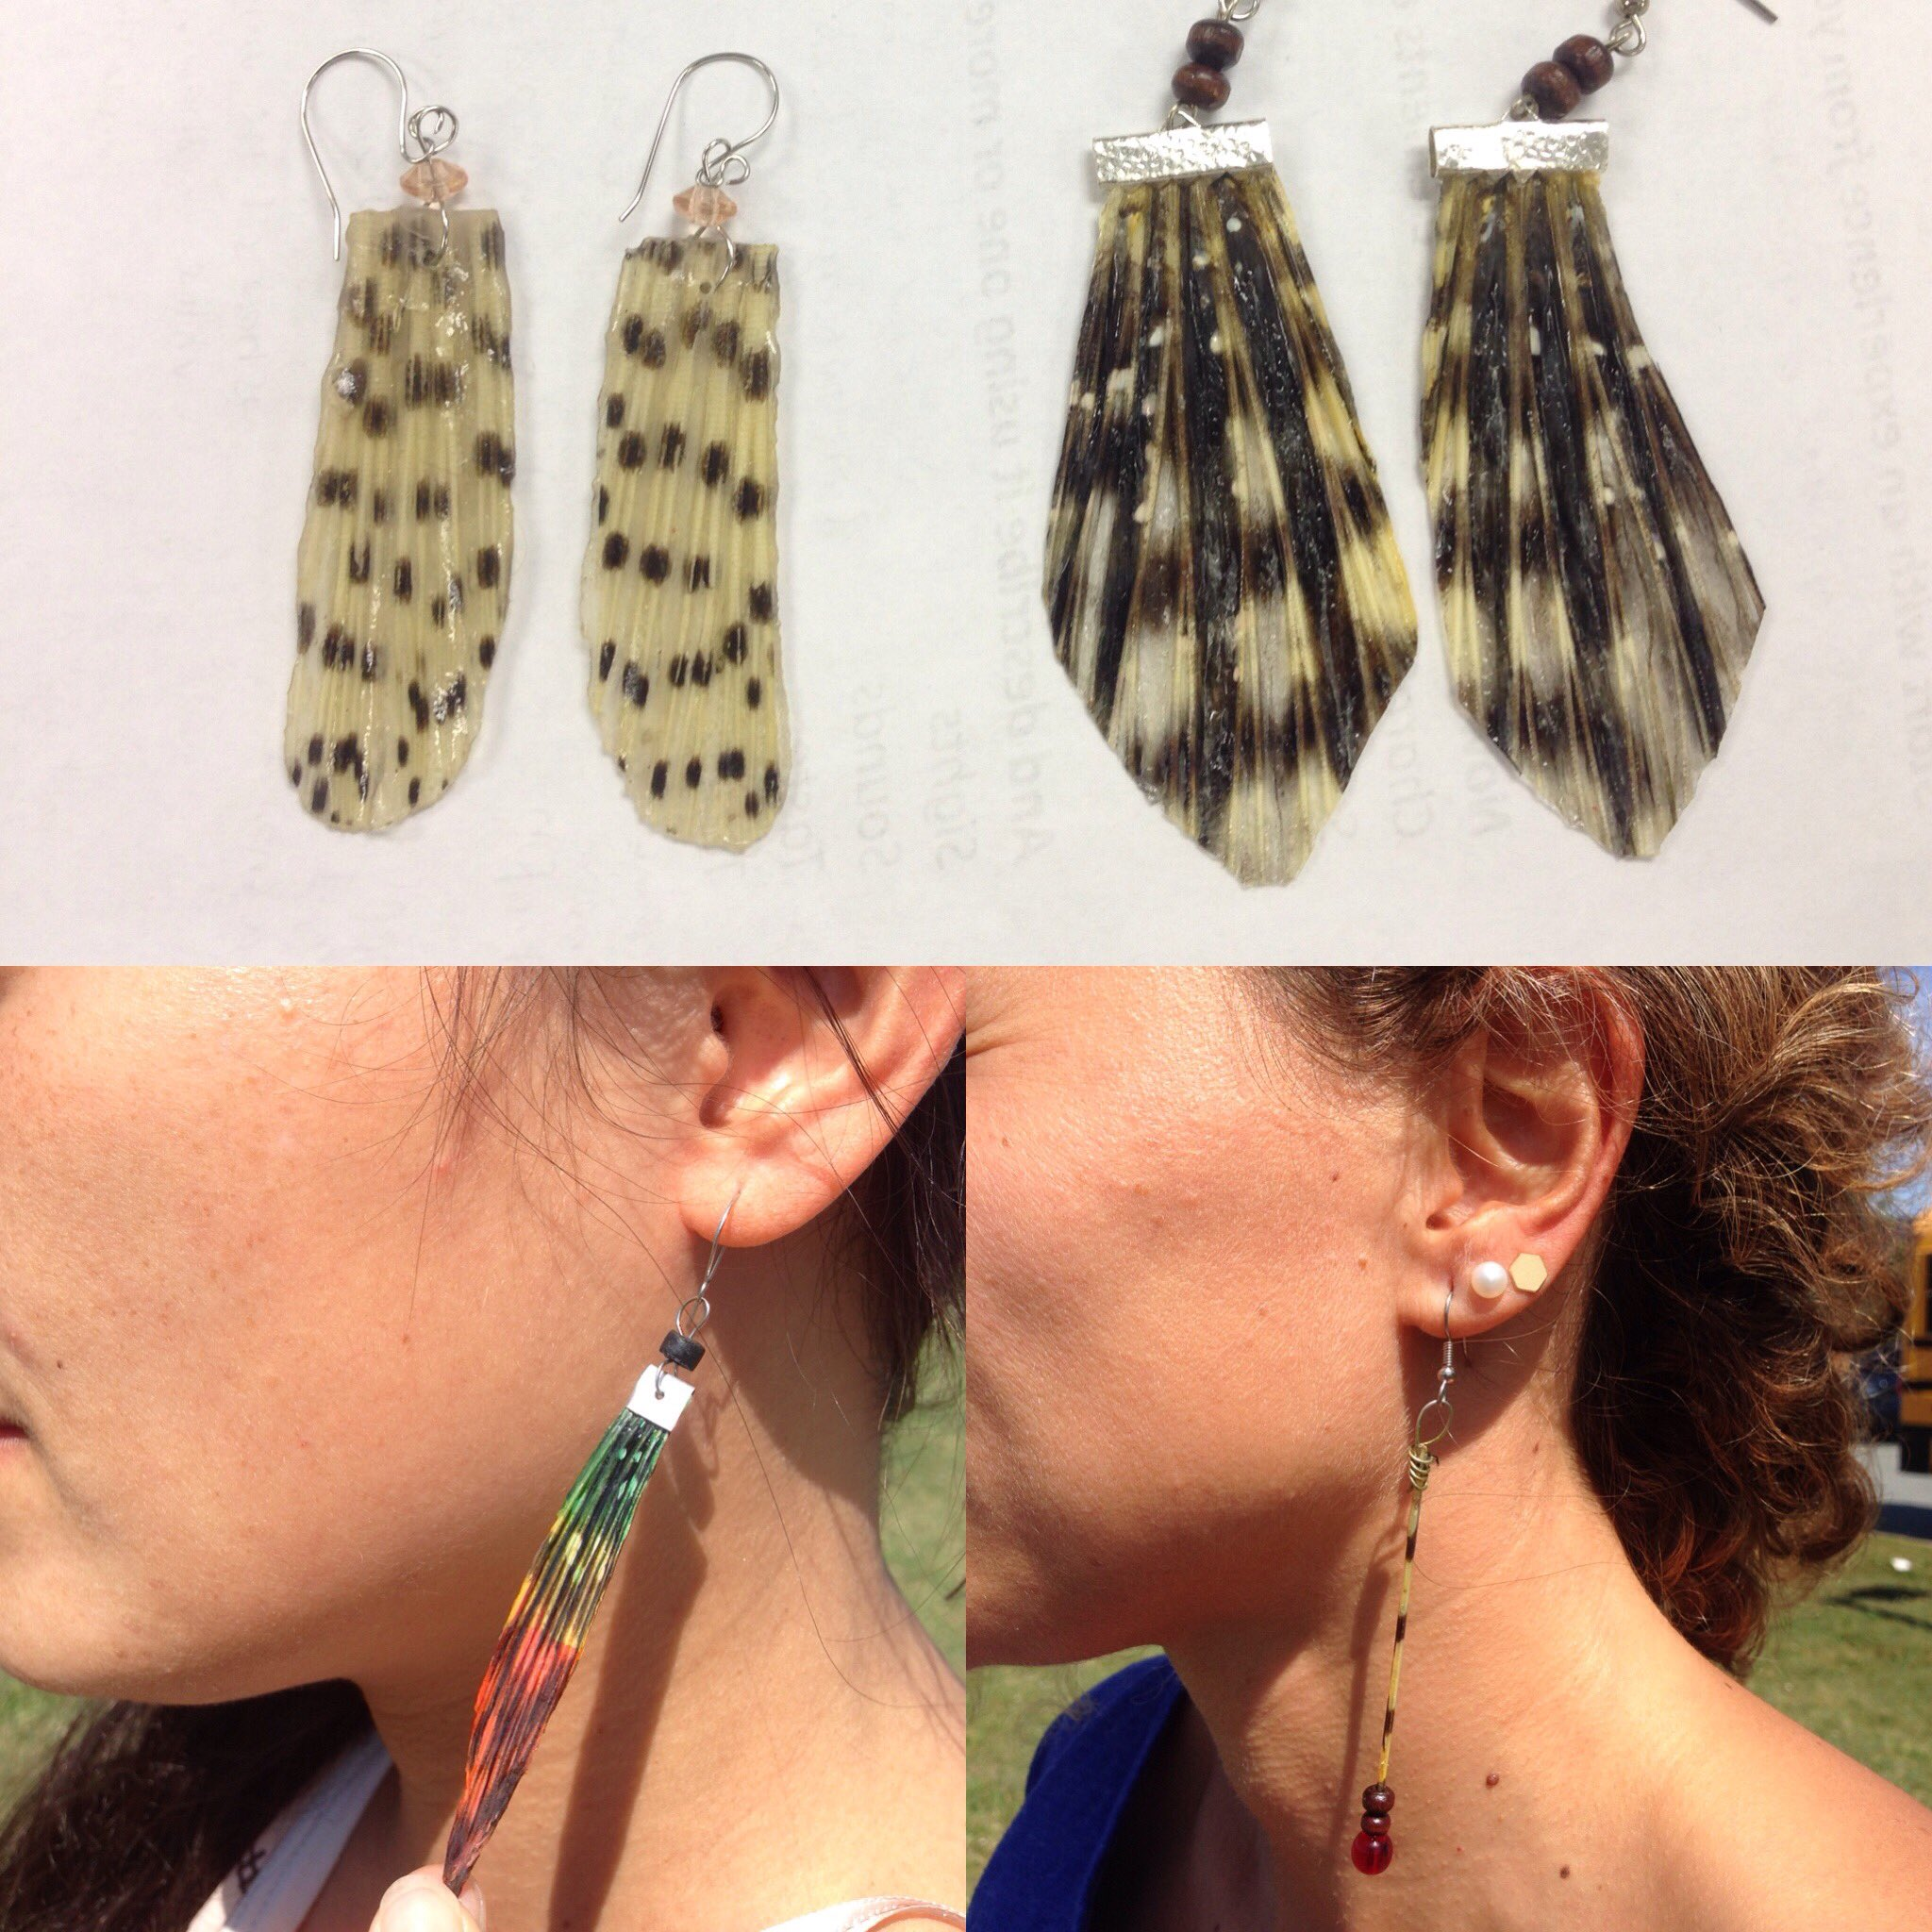 Thnks @pkarp24 for introducing me to these #lionfish  earrings from Belize during your story at #imccstories #imcc4 https://t.co/6LVXYeGWb3